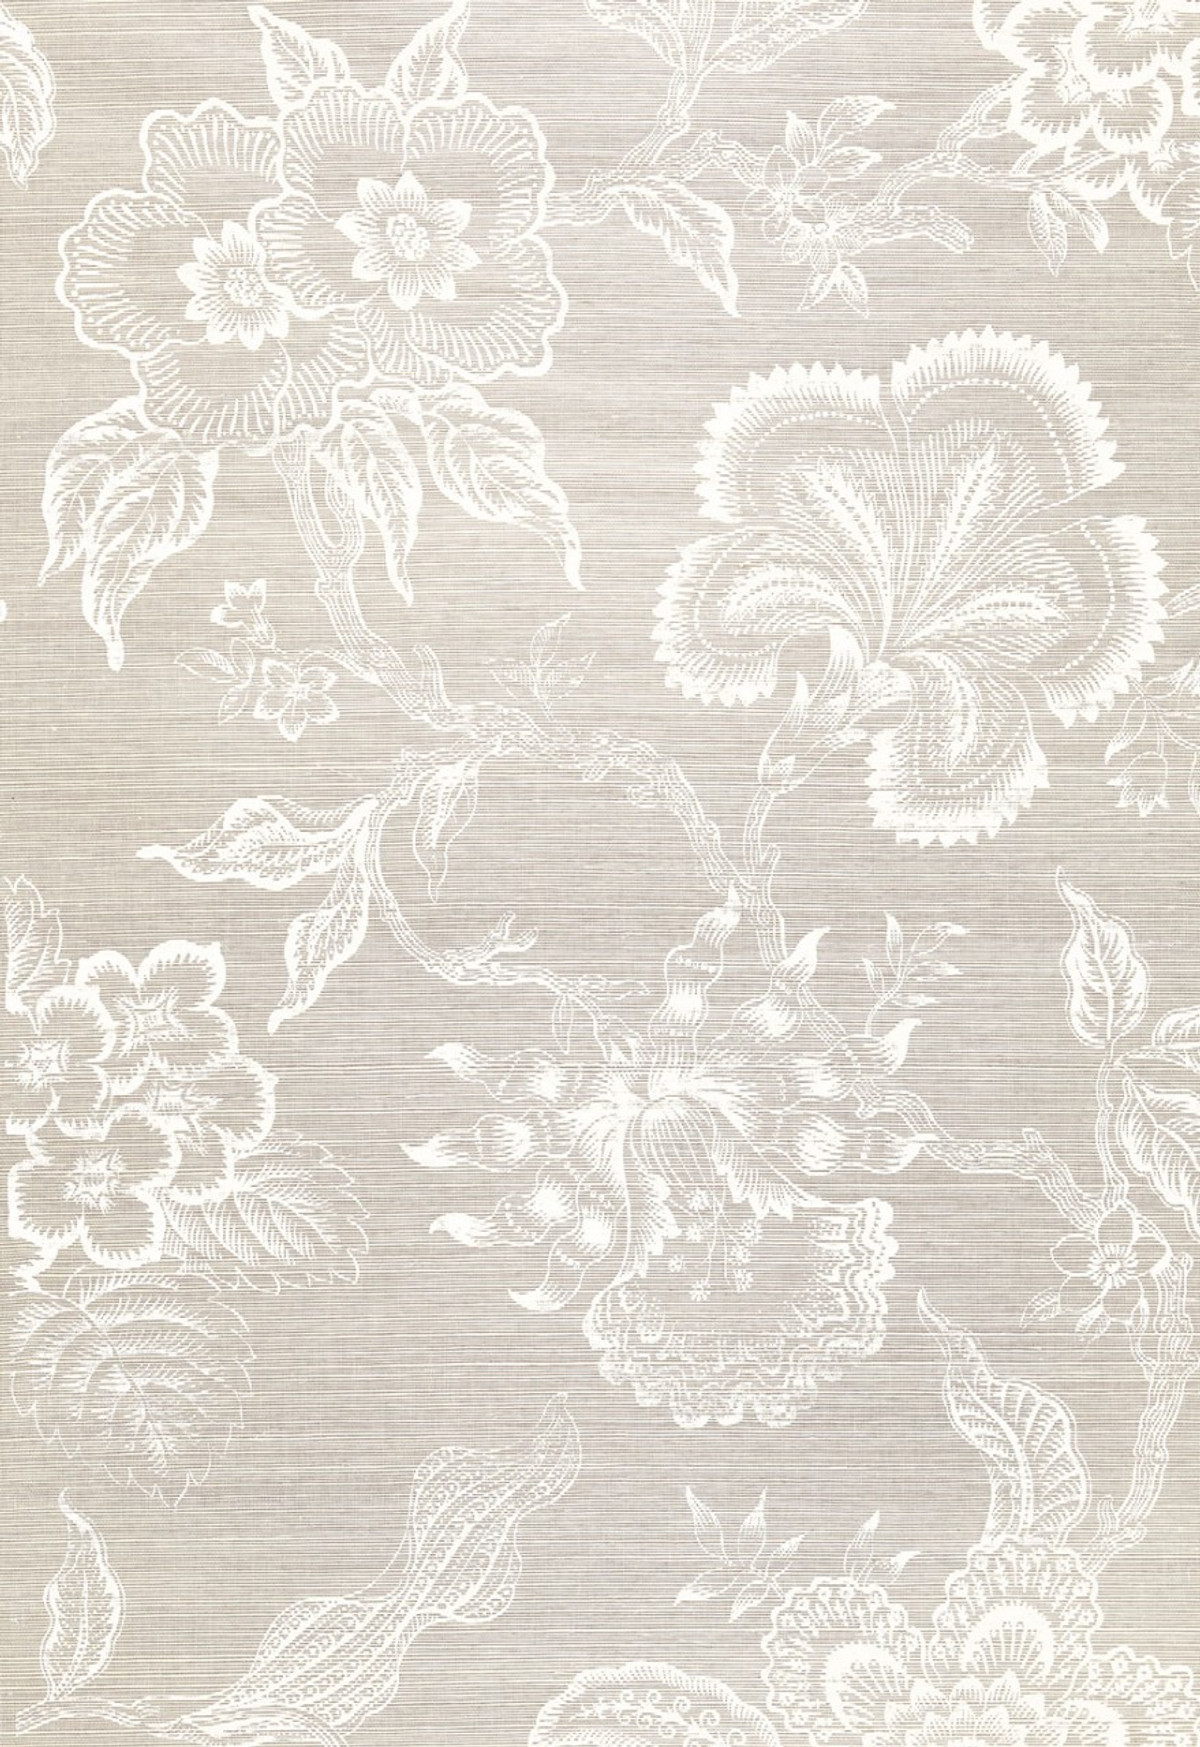 Celerie Kemble For Schumacher Hothouse Flowers Sisal Fog Chalk Wallpaper Sold Priced By